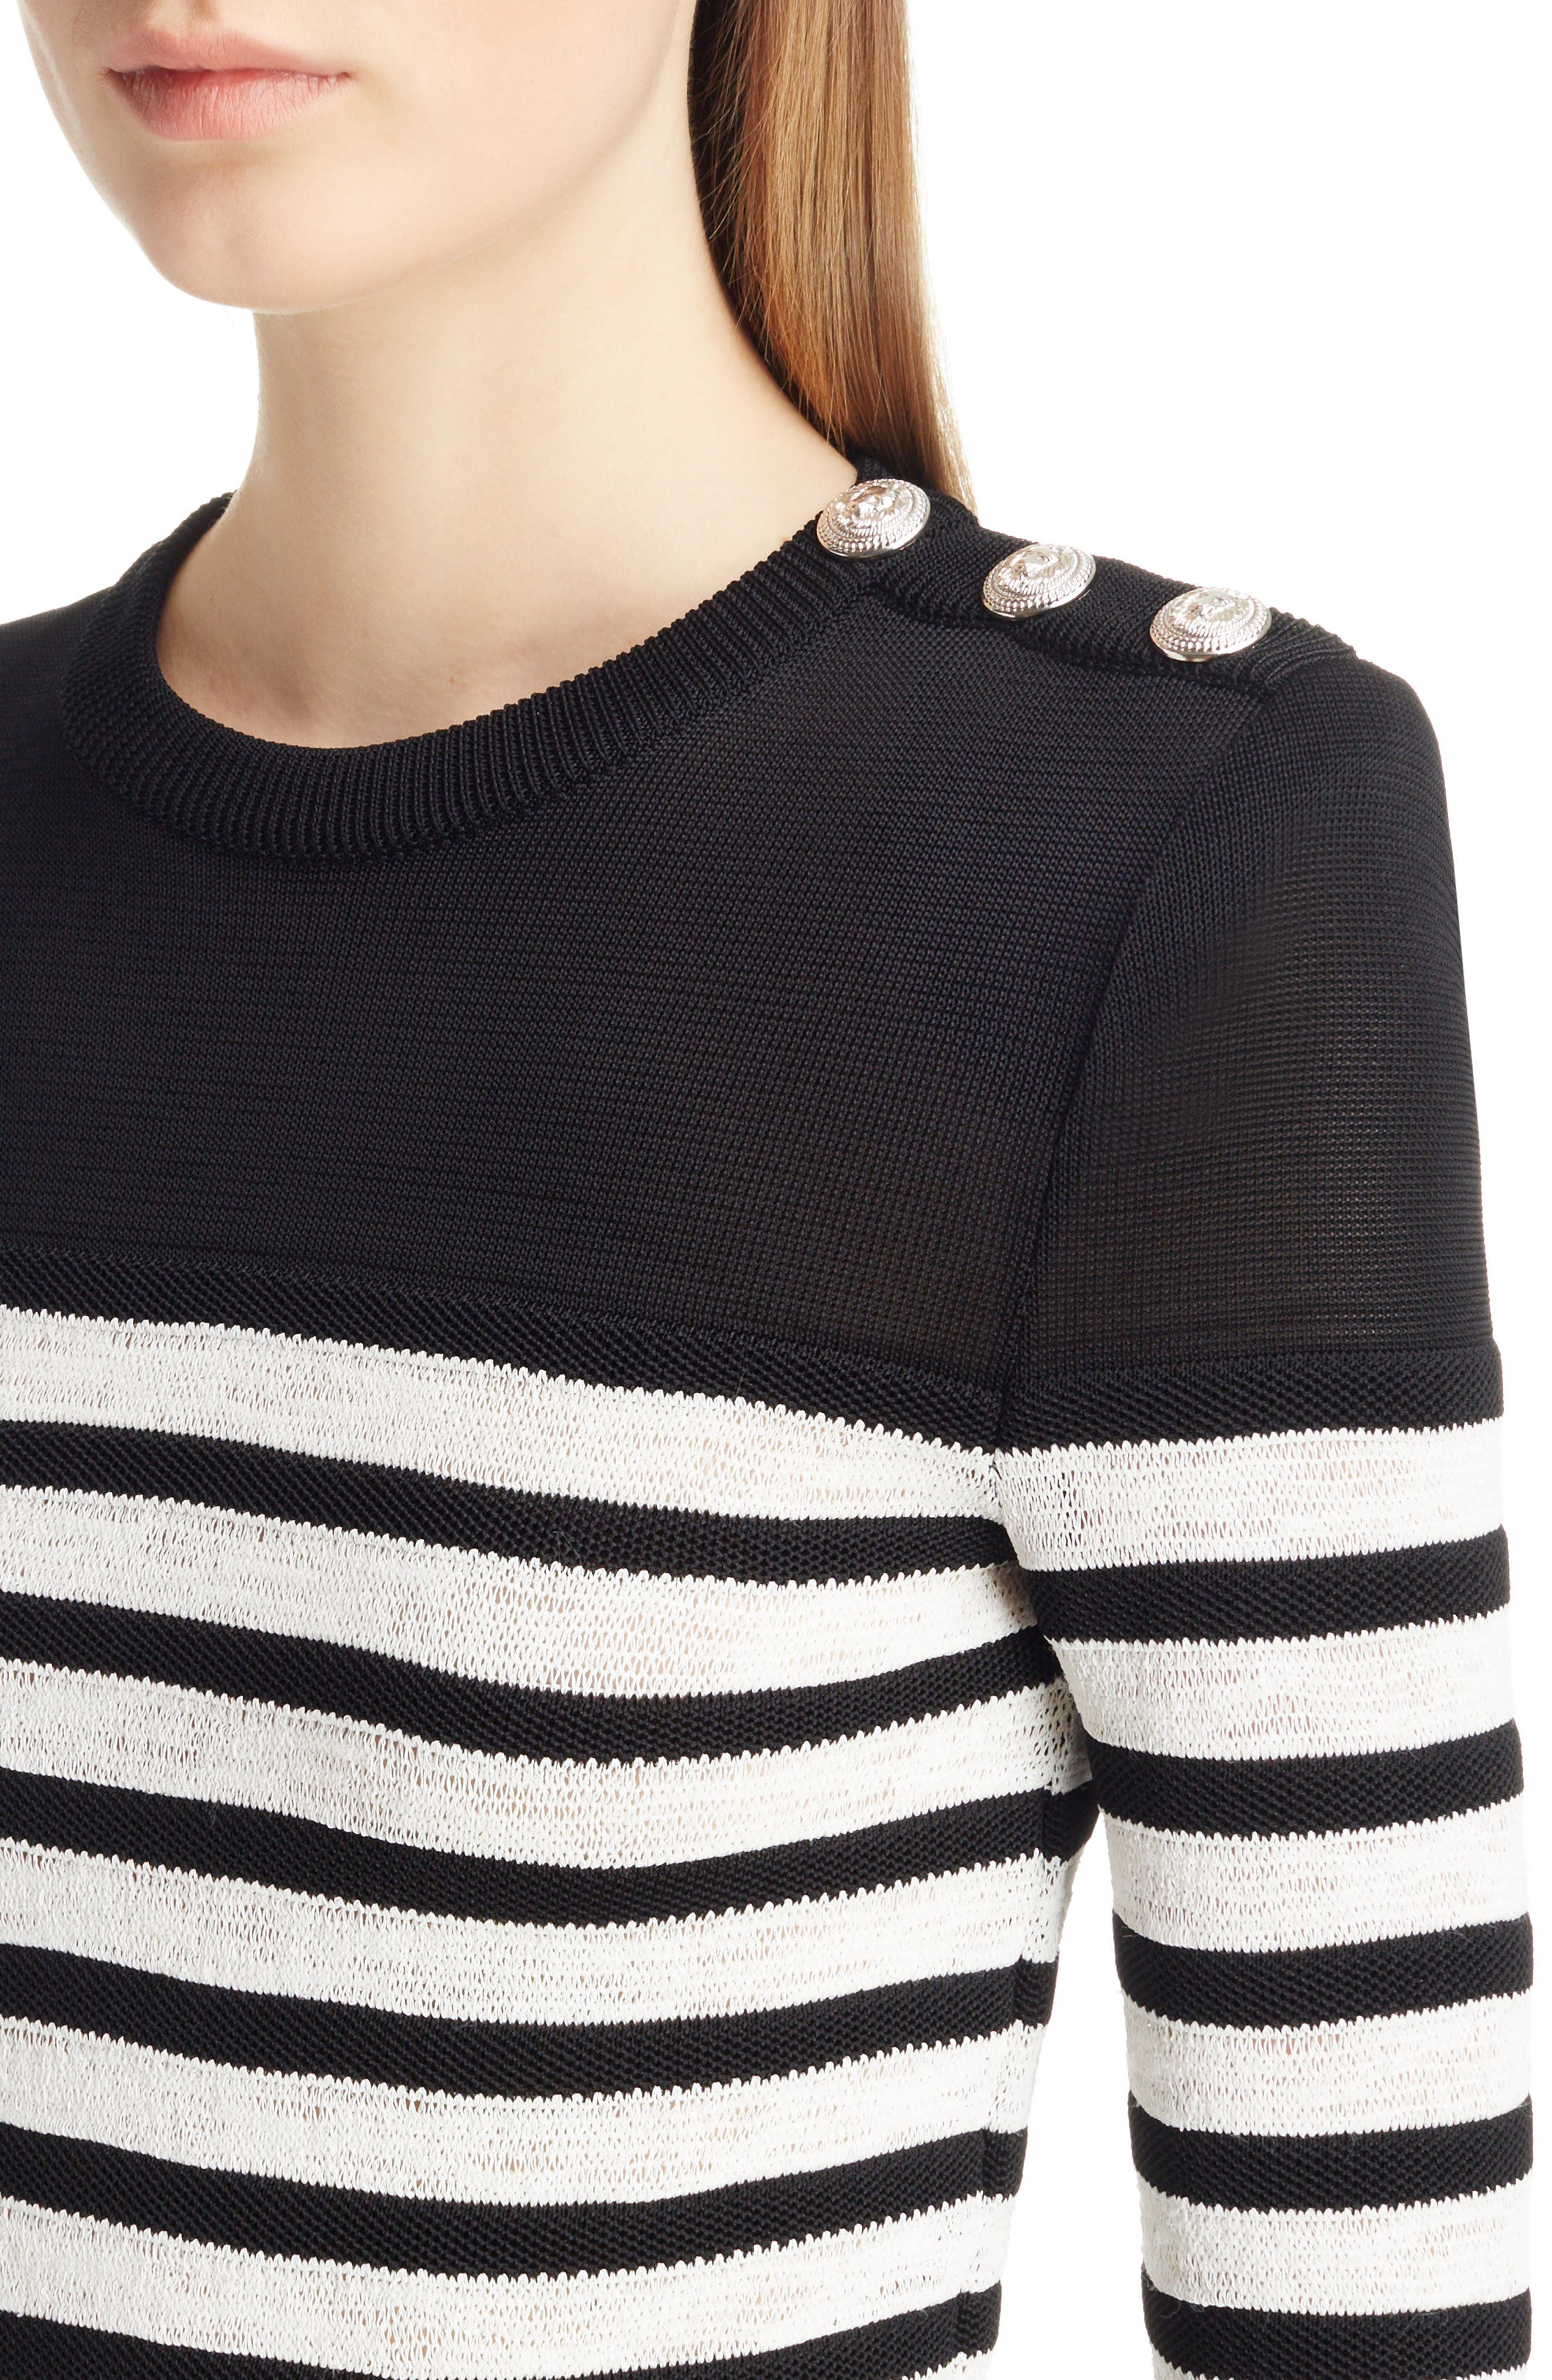 Marine Stripe Knit Sweater,                             Alternate thumbnail 4, color,                             Black And White